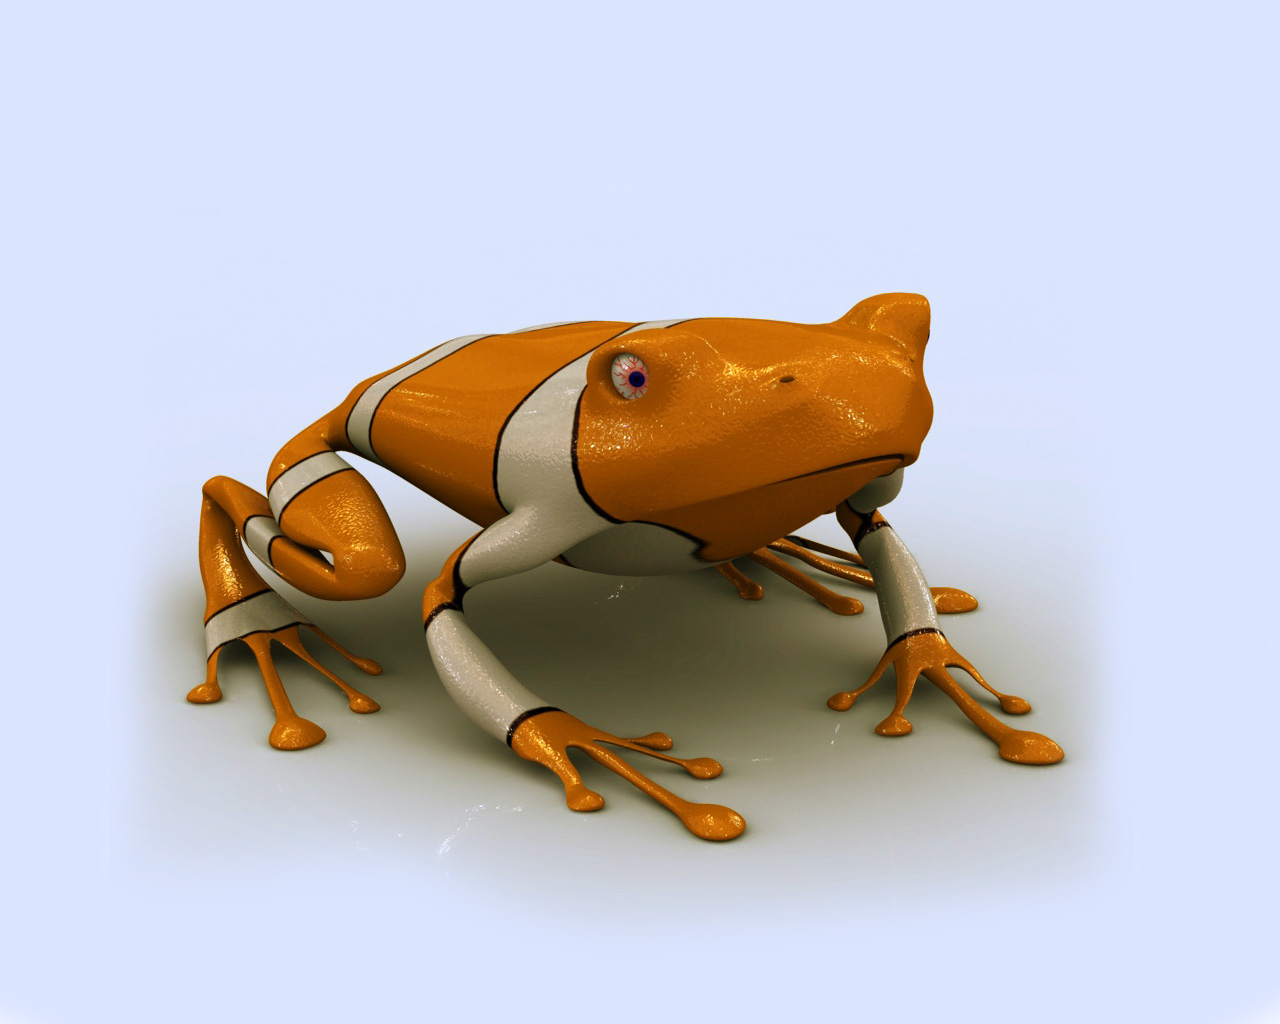 1280x1024 Frog desktop wallpapers and stock photos